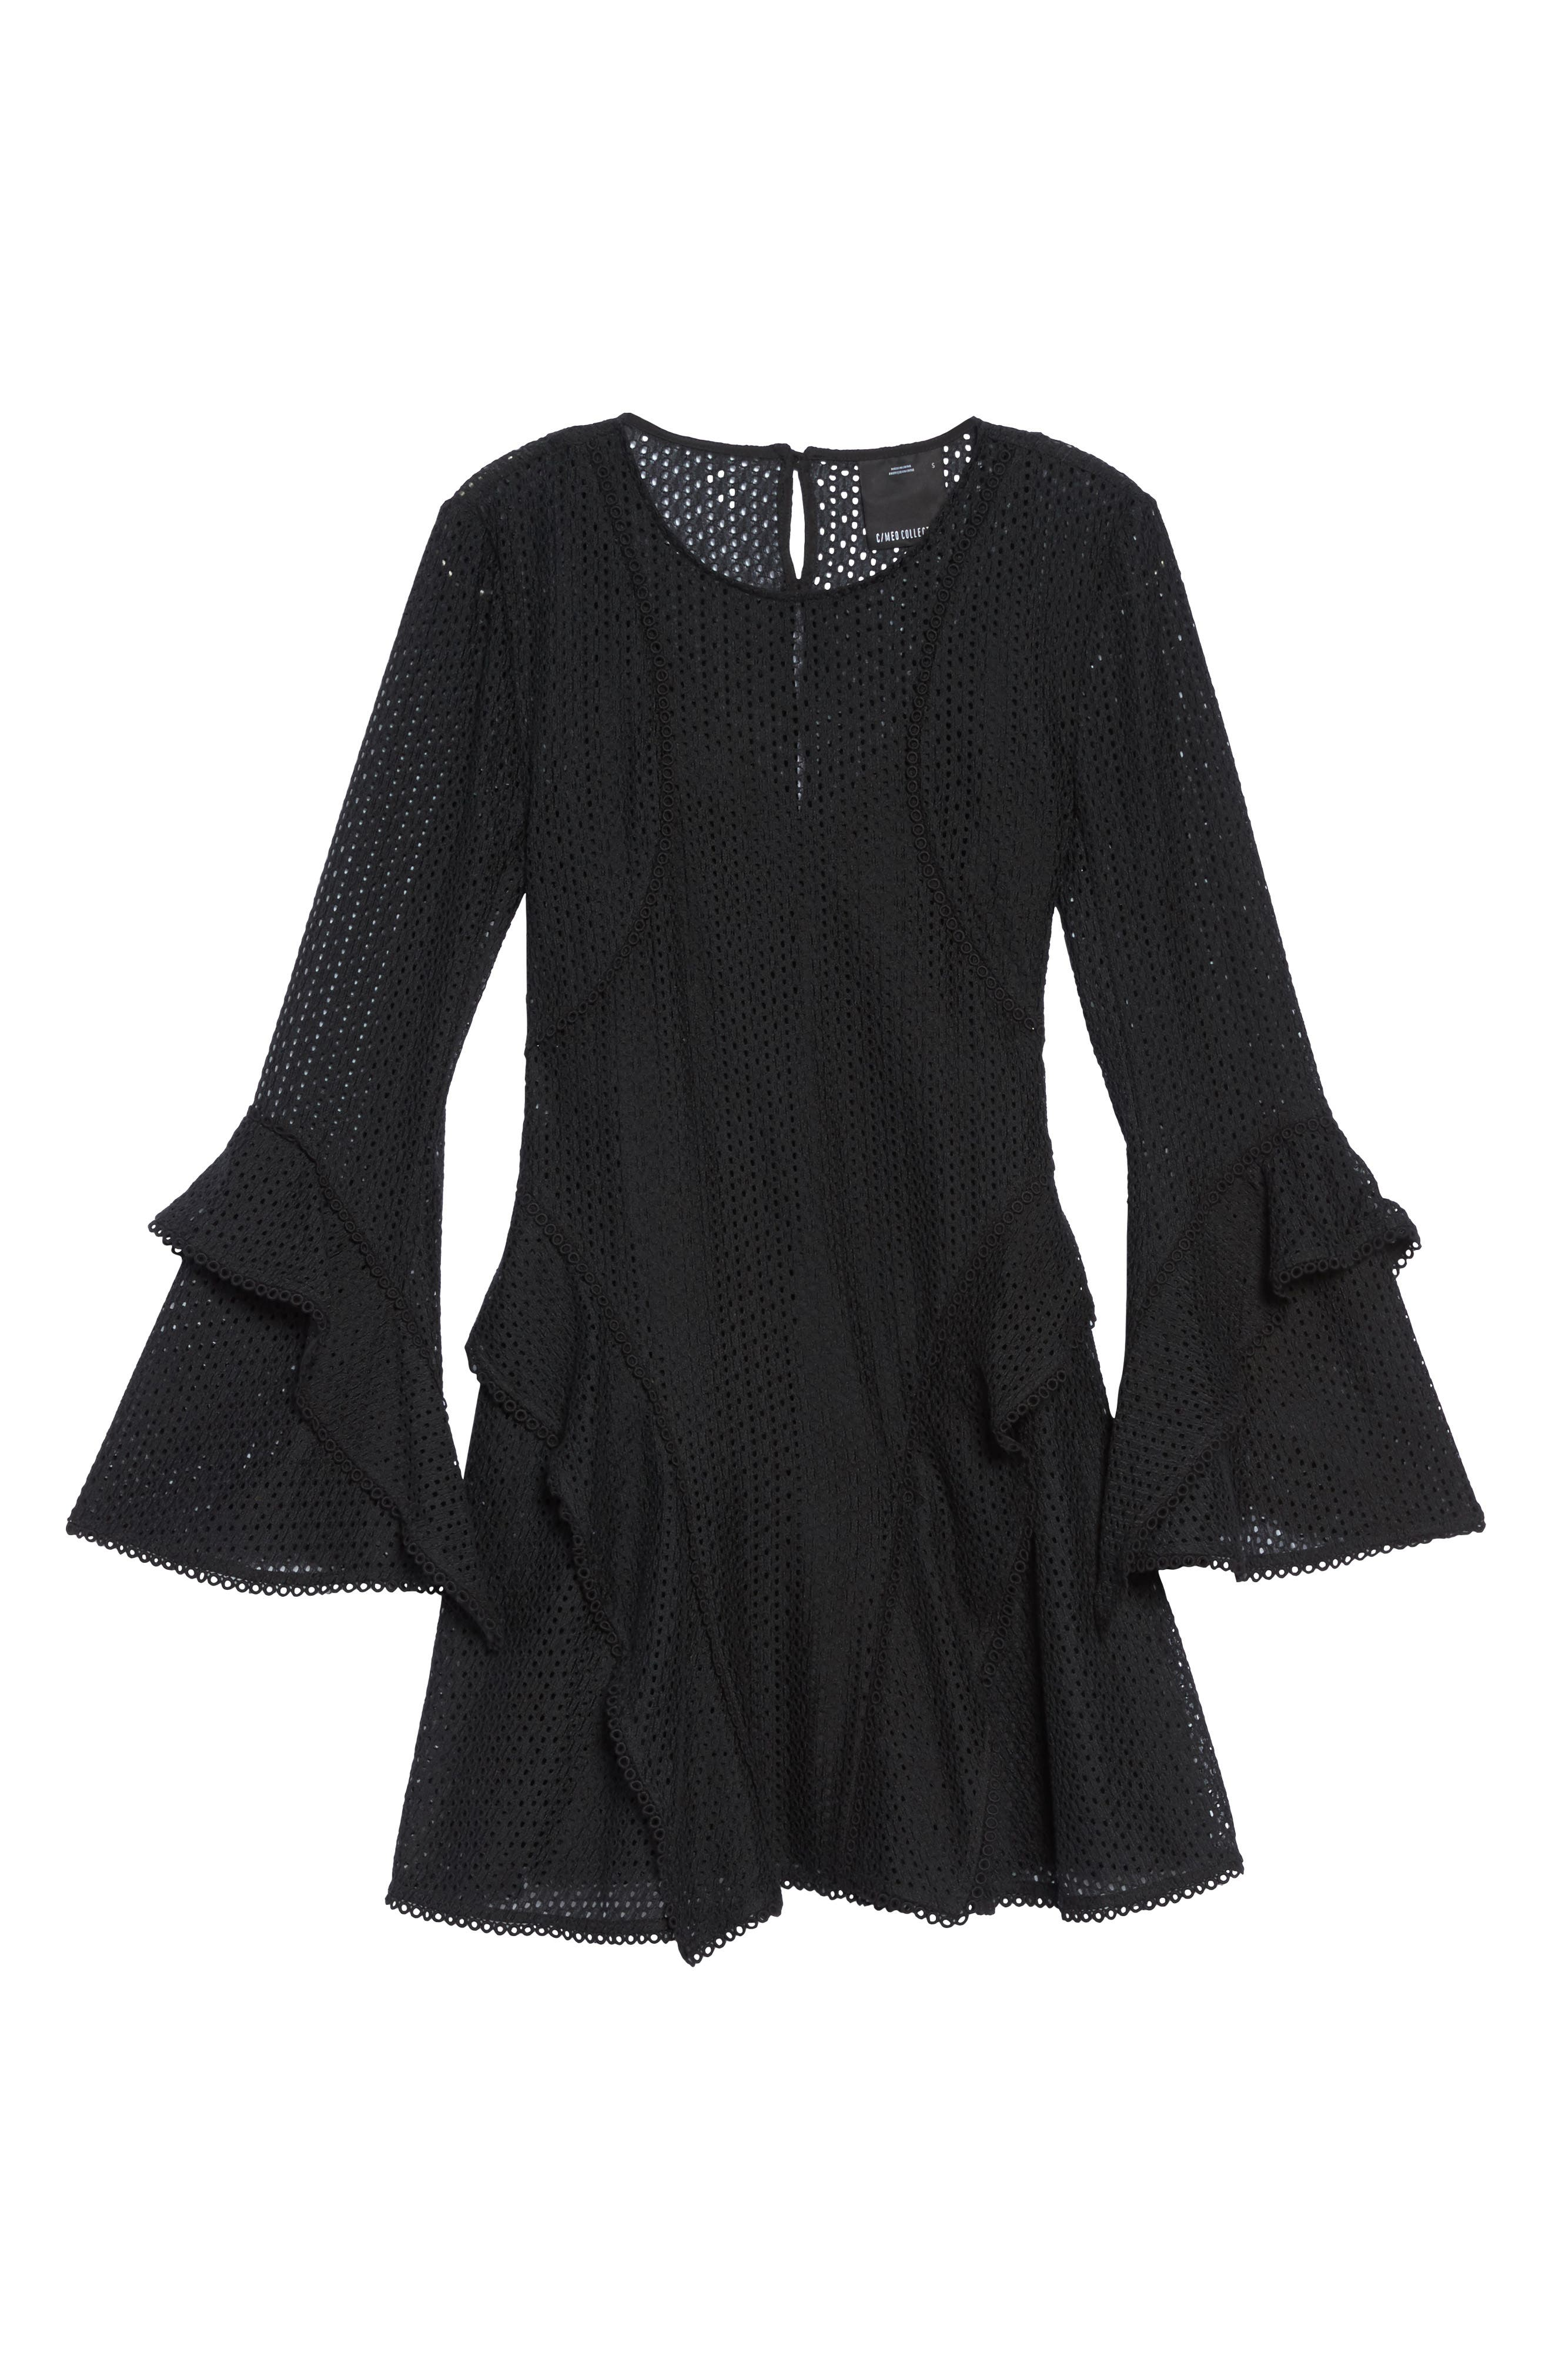 Aspire Lace Bell Sleeve Minidress,                             Alternate thumbnail 6, color,                             001